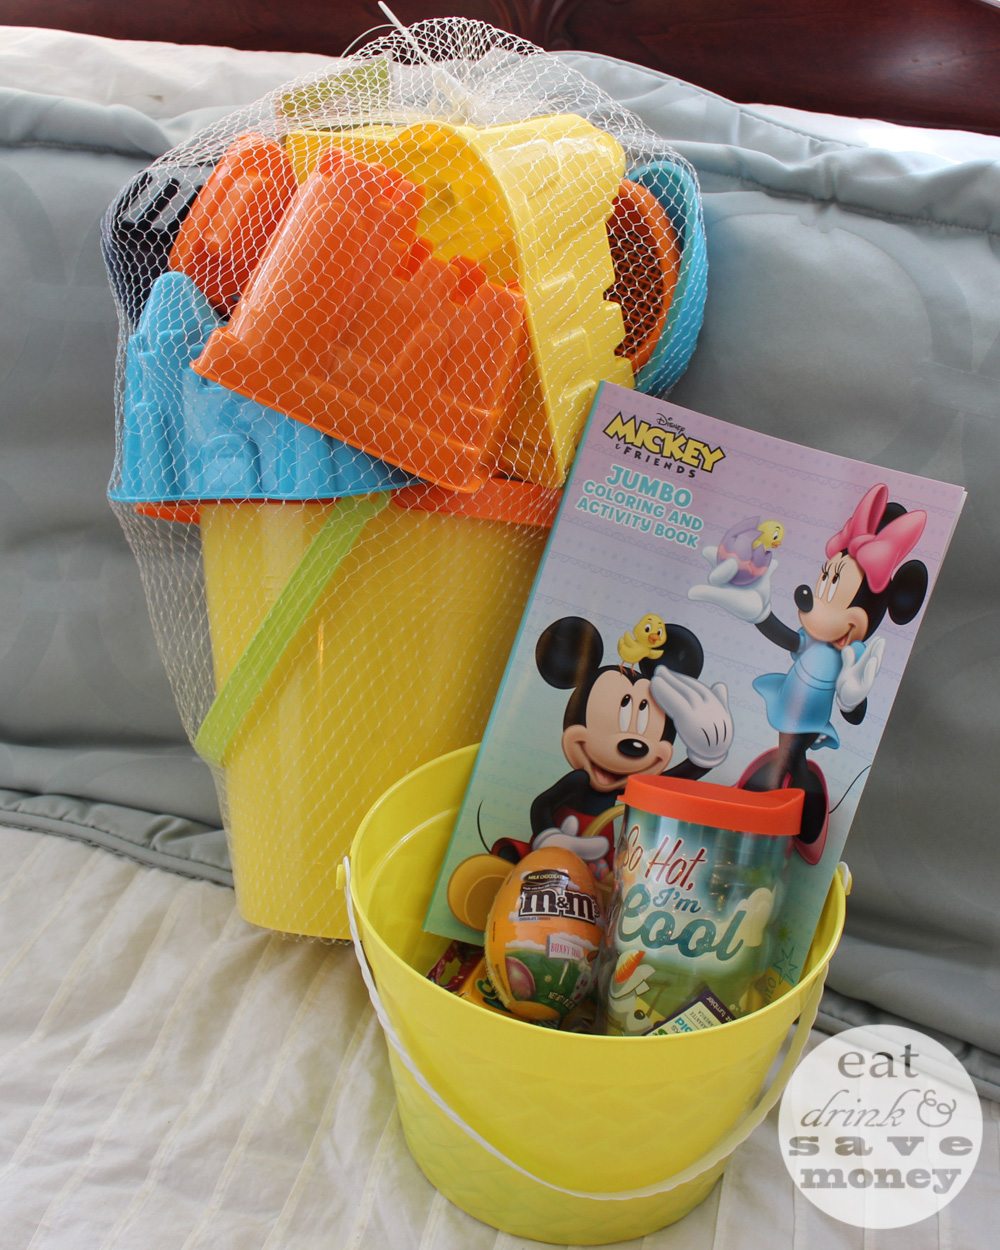 Easter basket 2015